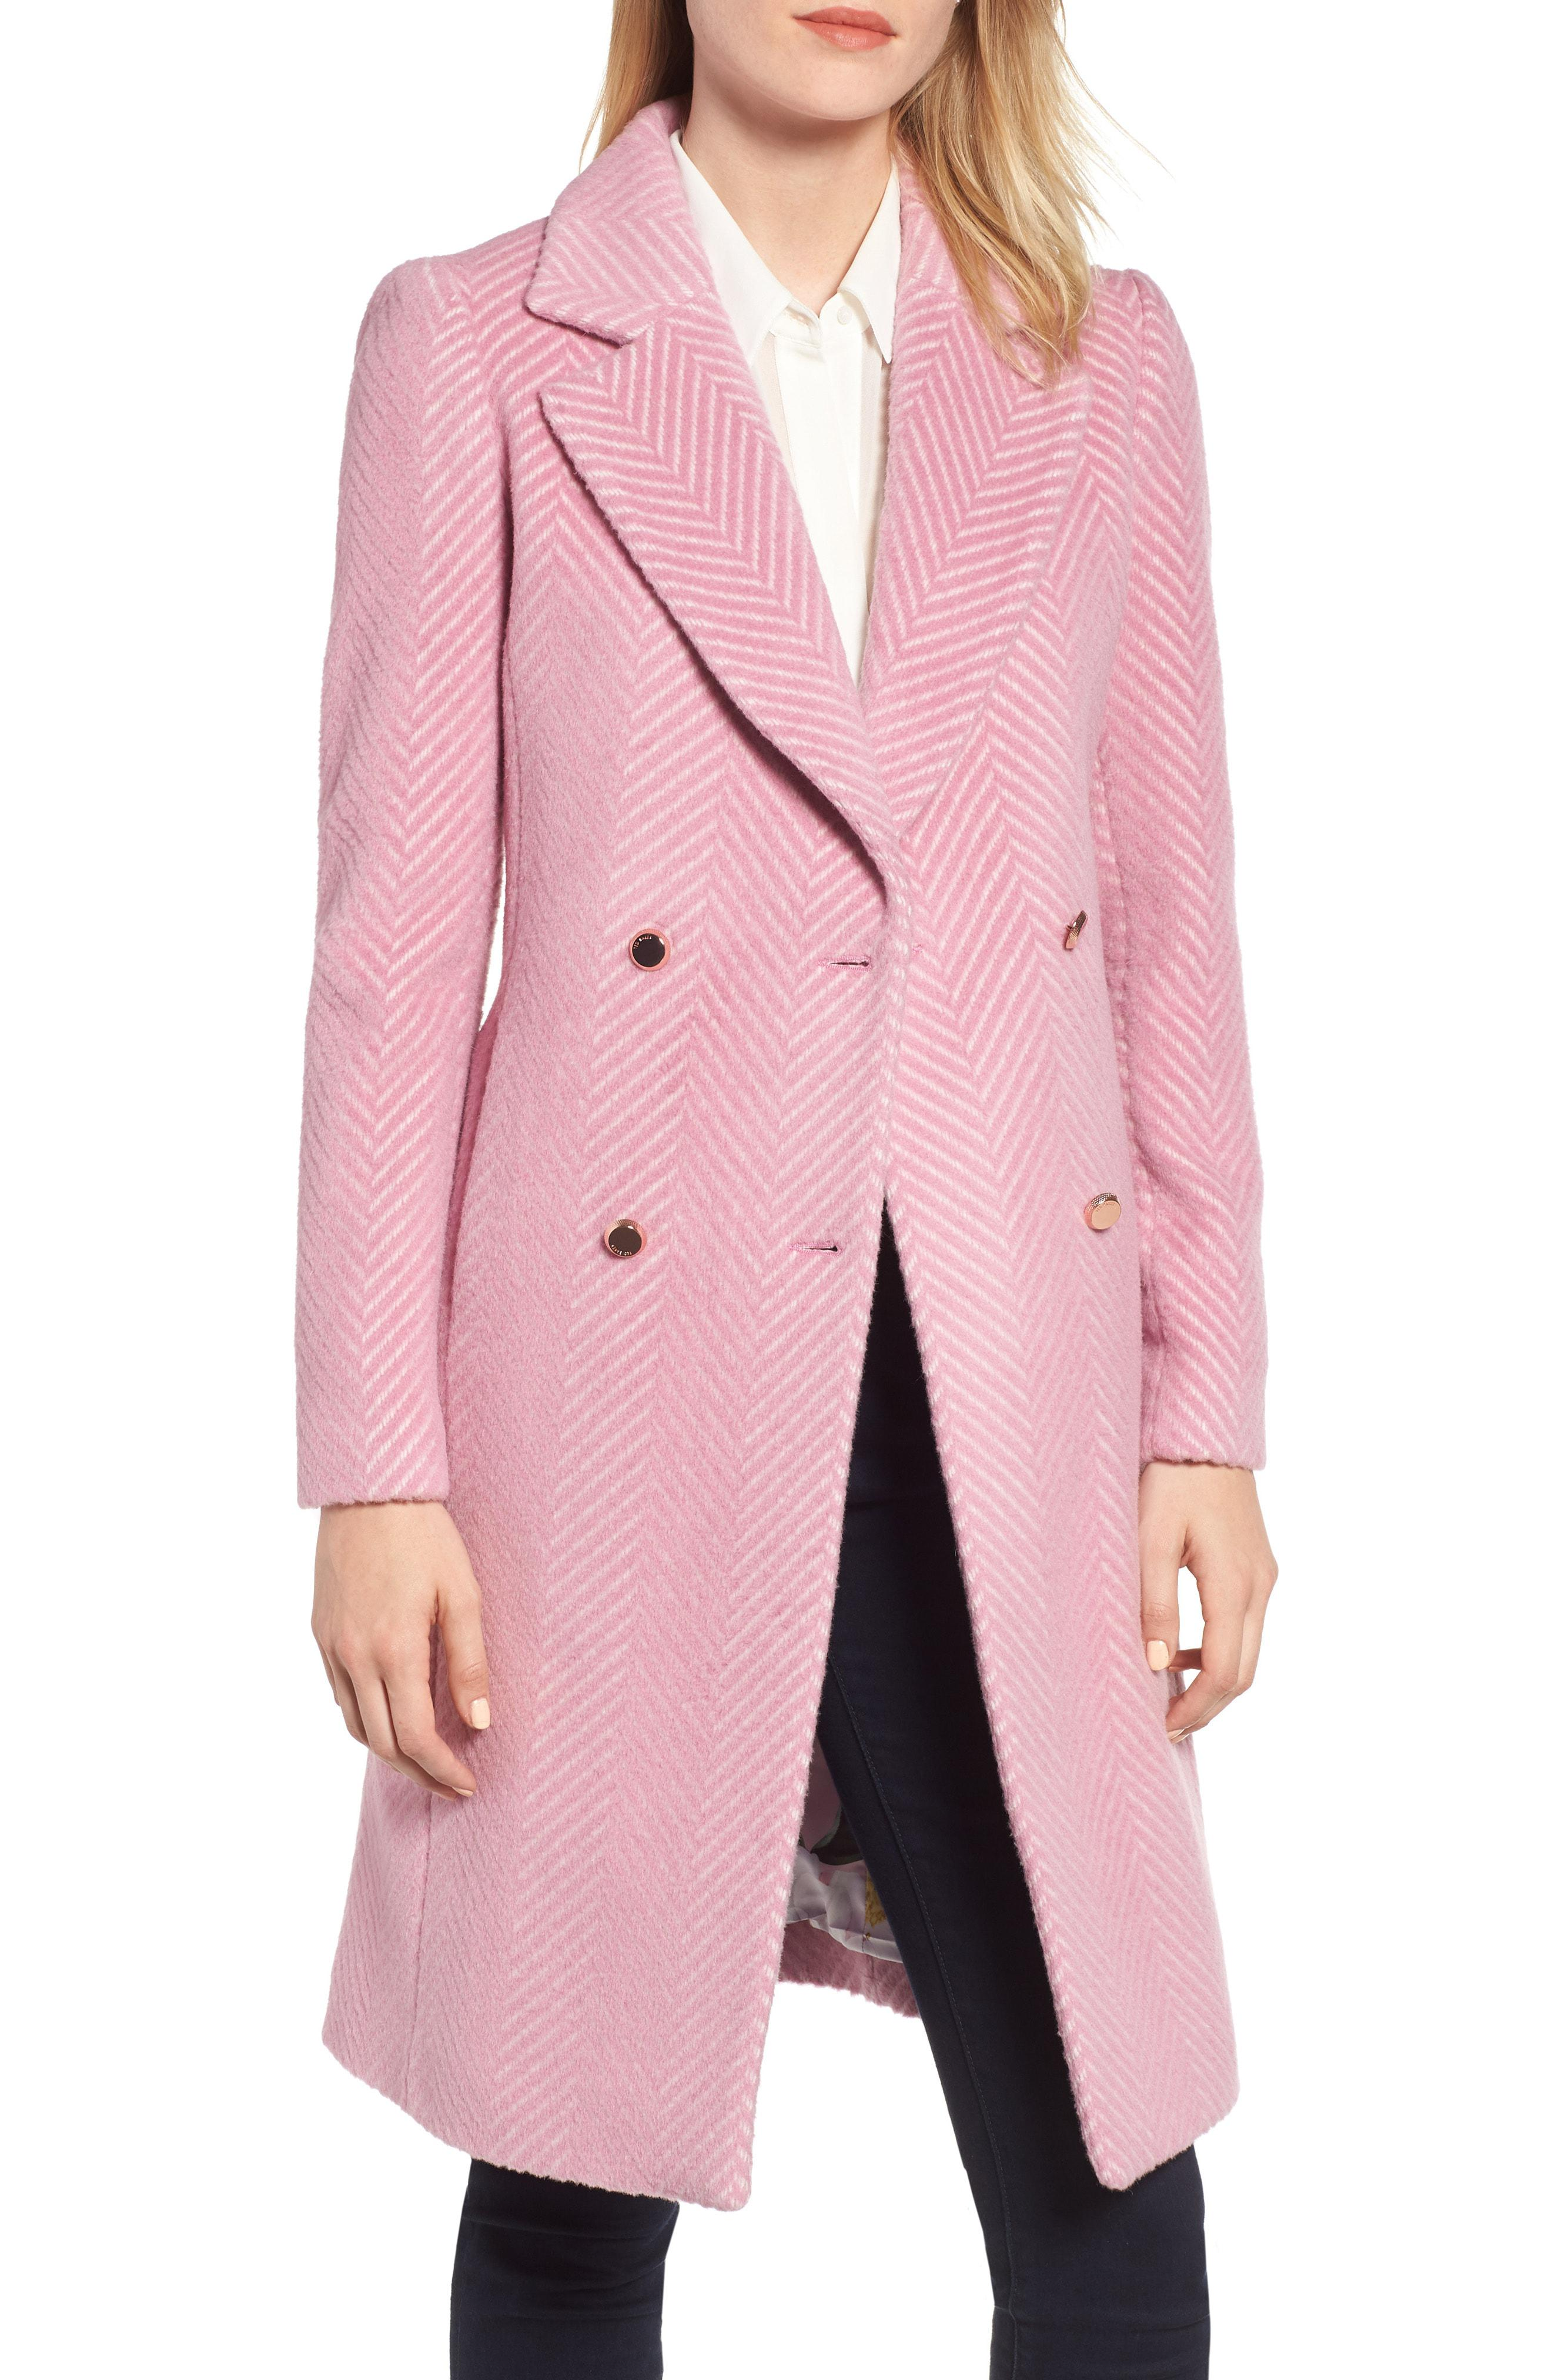 980d81f70 Lyst - Ted Baker Chevron Coat in Pink